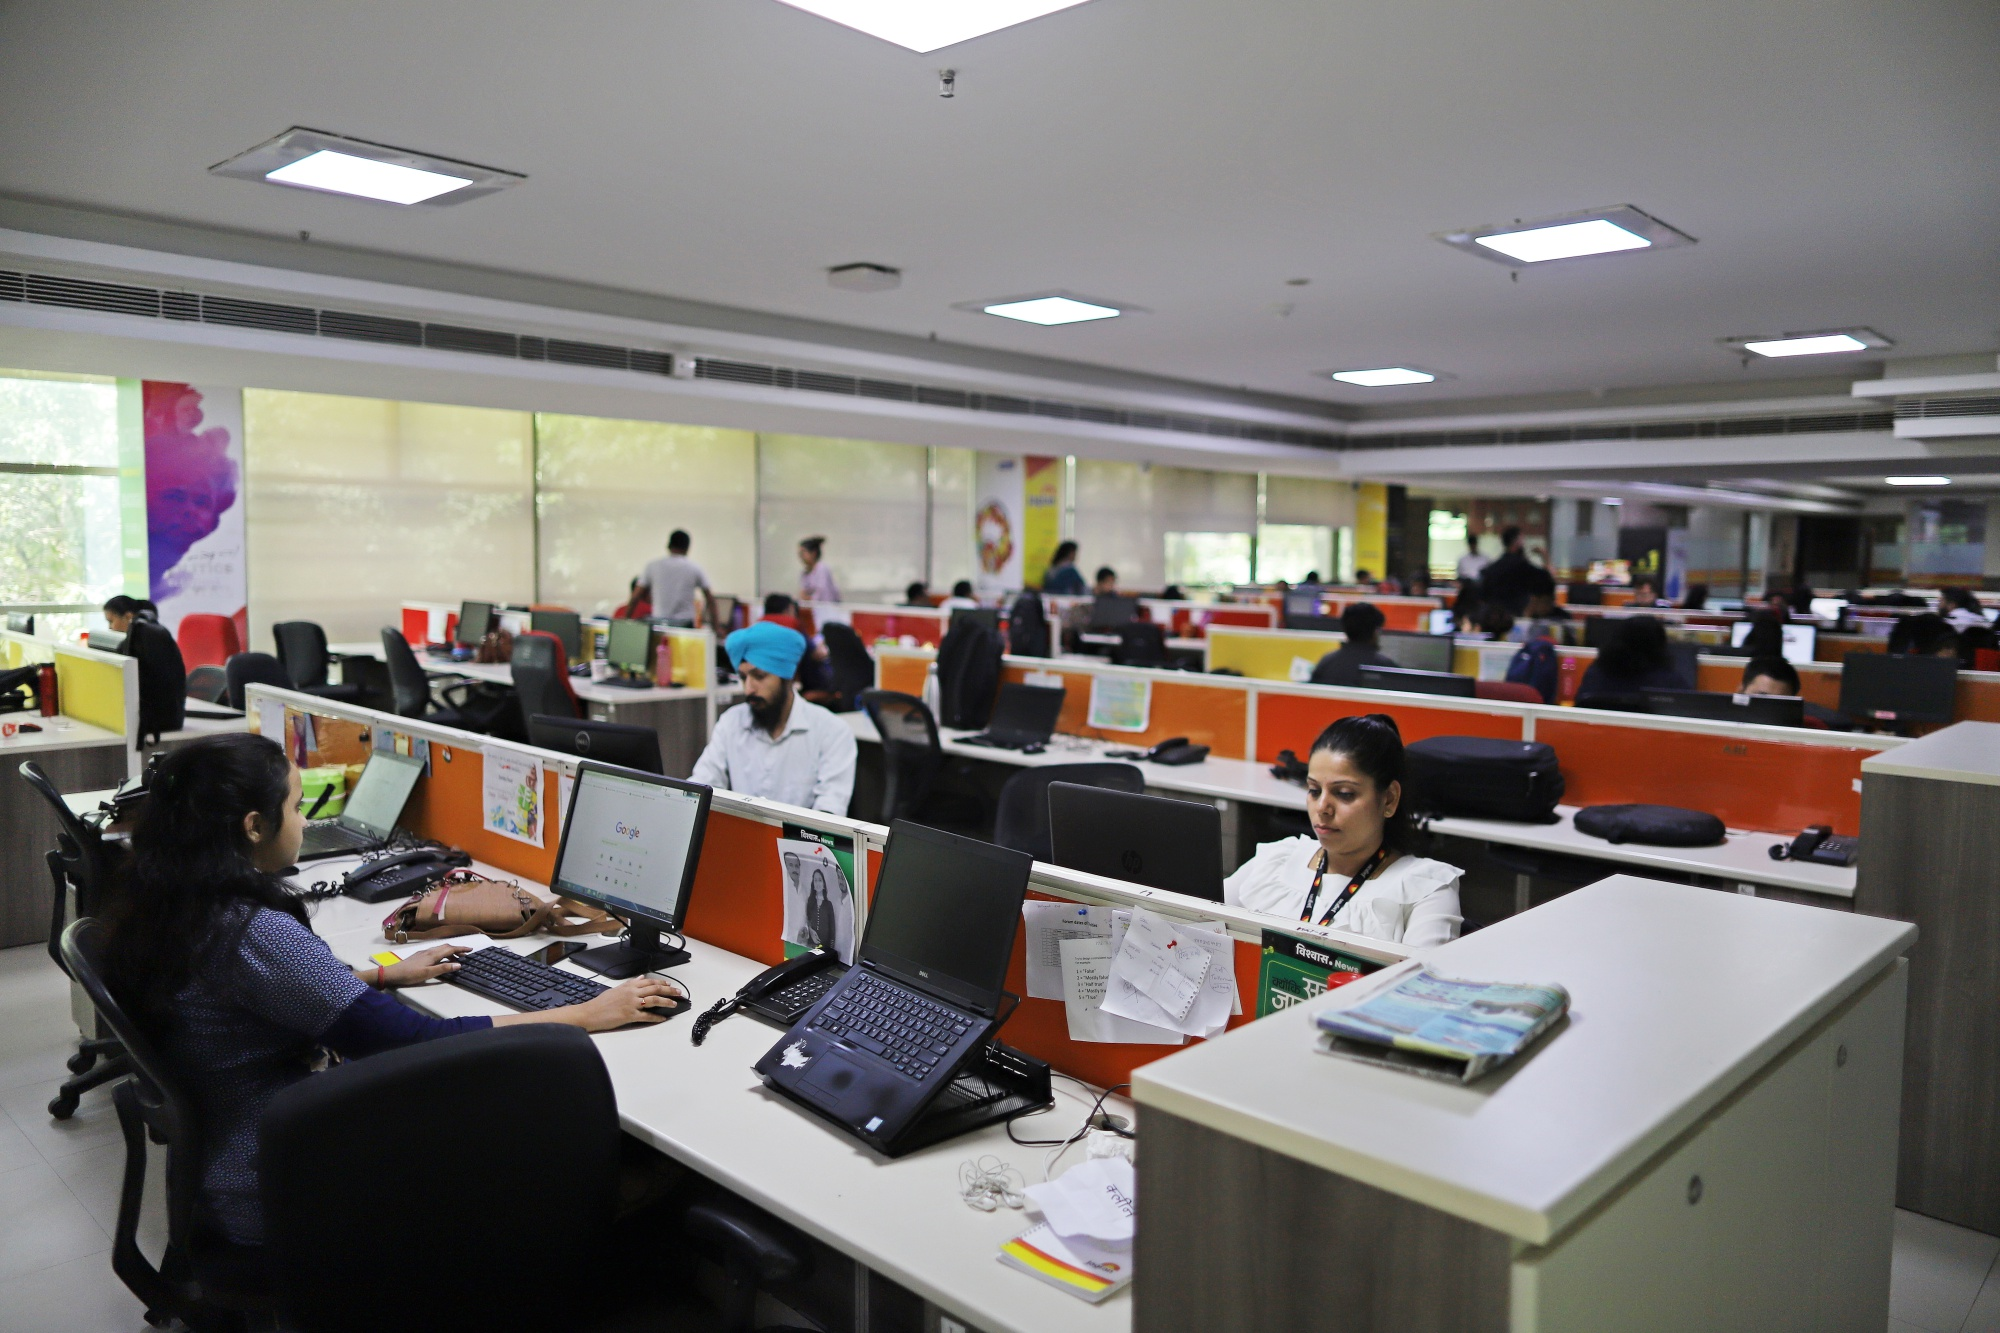 People working in Office of an IT company